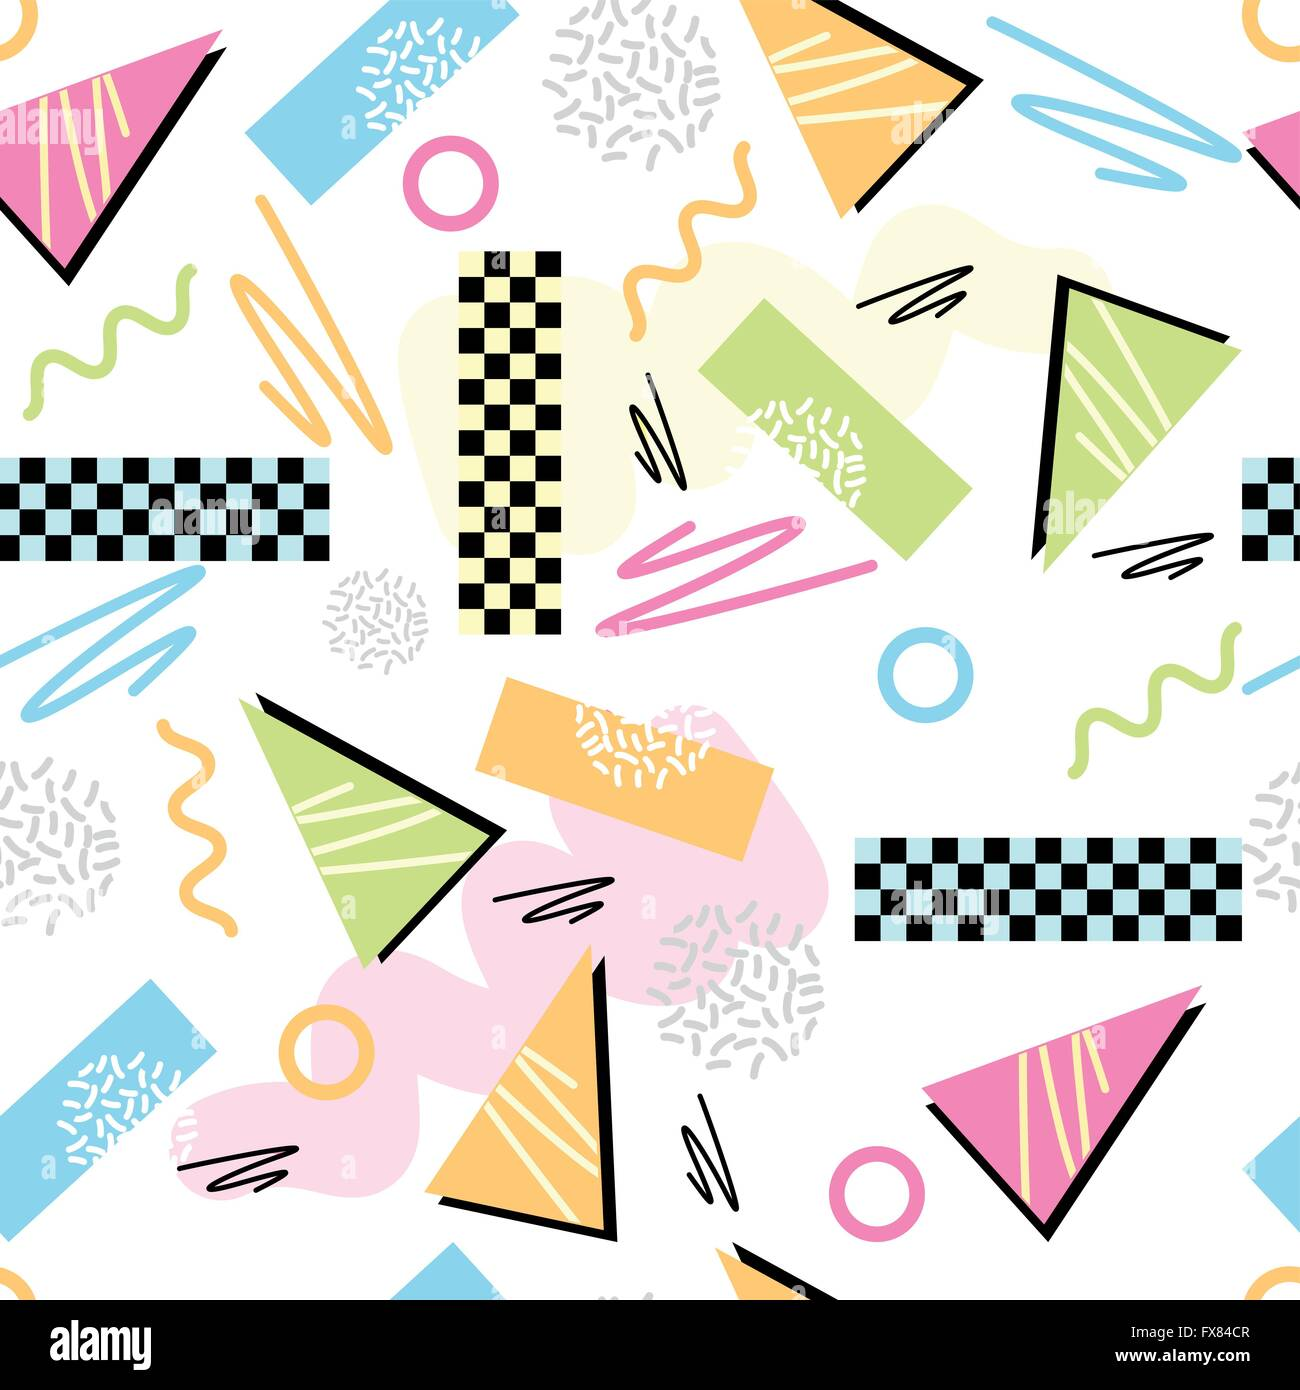 Eighties Seamless Pattern Vector. Classic light pastel 1980s seamless grid pattern. Vector illustration. - Stock Vector